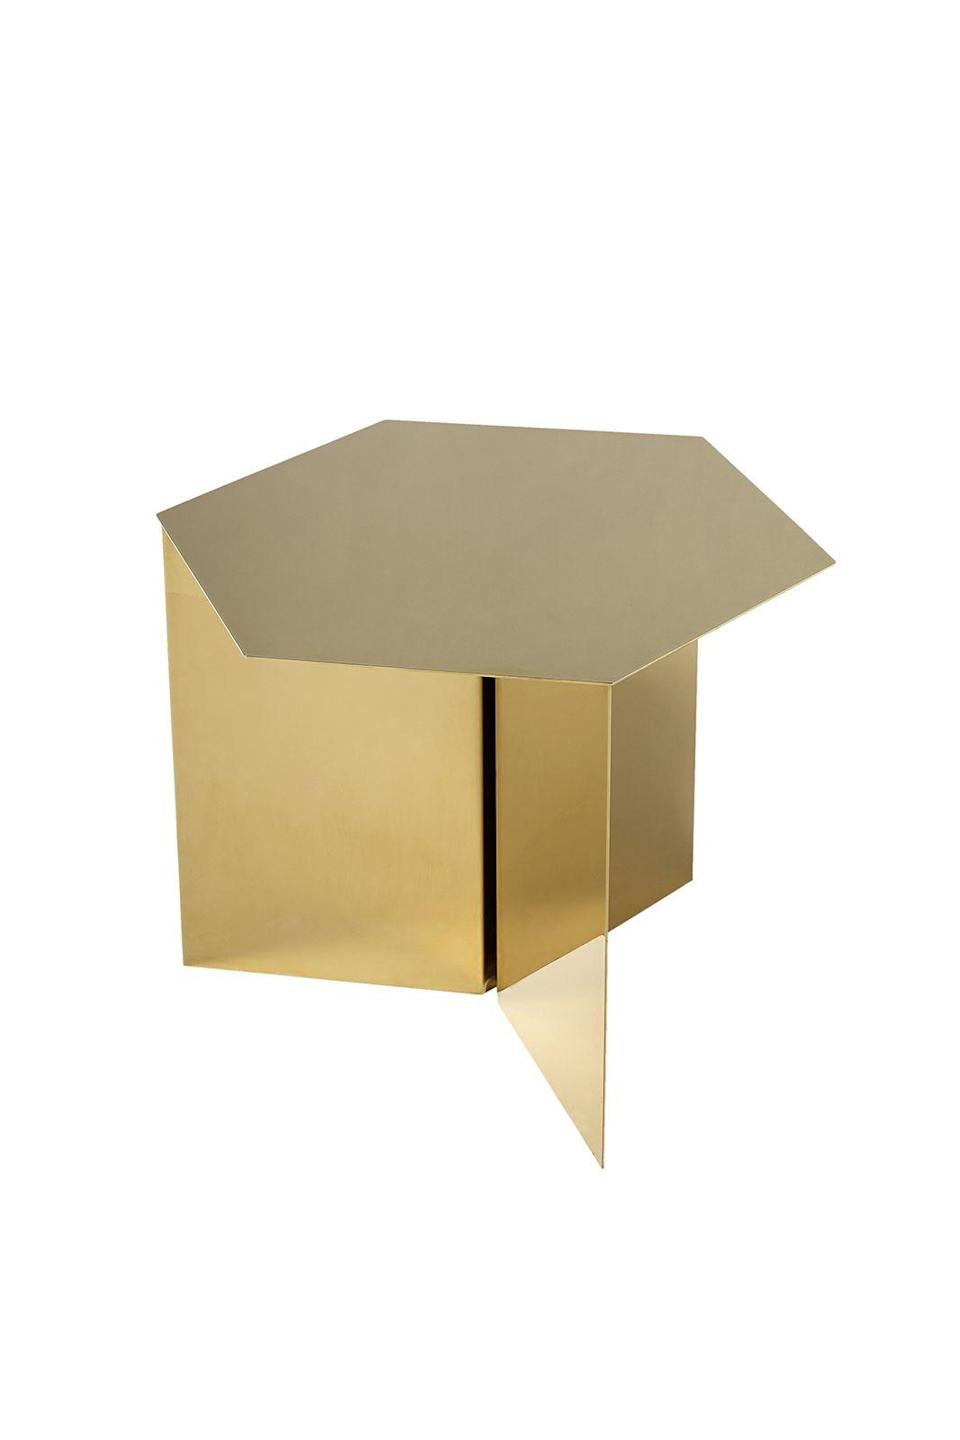 """<p><strong>A side of brass</strong></p><p>Side tables don't come any more statement than the Hay slit brass table. Inspired by origami, its perfect geometry is sure to make your home look sharp.</p><p>£359, <a href=""""https://www.amara.com/products/slit-table-hexagon-brass"""" rel=""""nofollow noopener"""" target=""""_blank"""" data-ylk=""""slk:amara.com"""" class=""""link rapid-noclick-resp"""">amara.com</a></p>"""